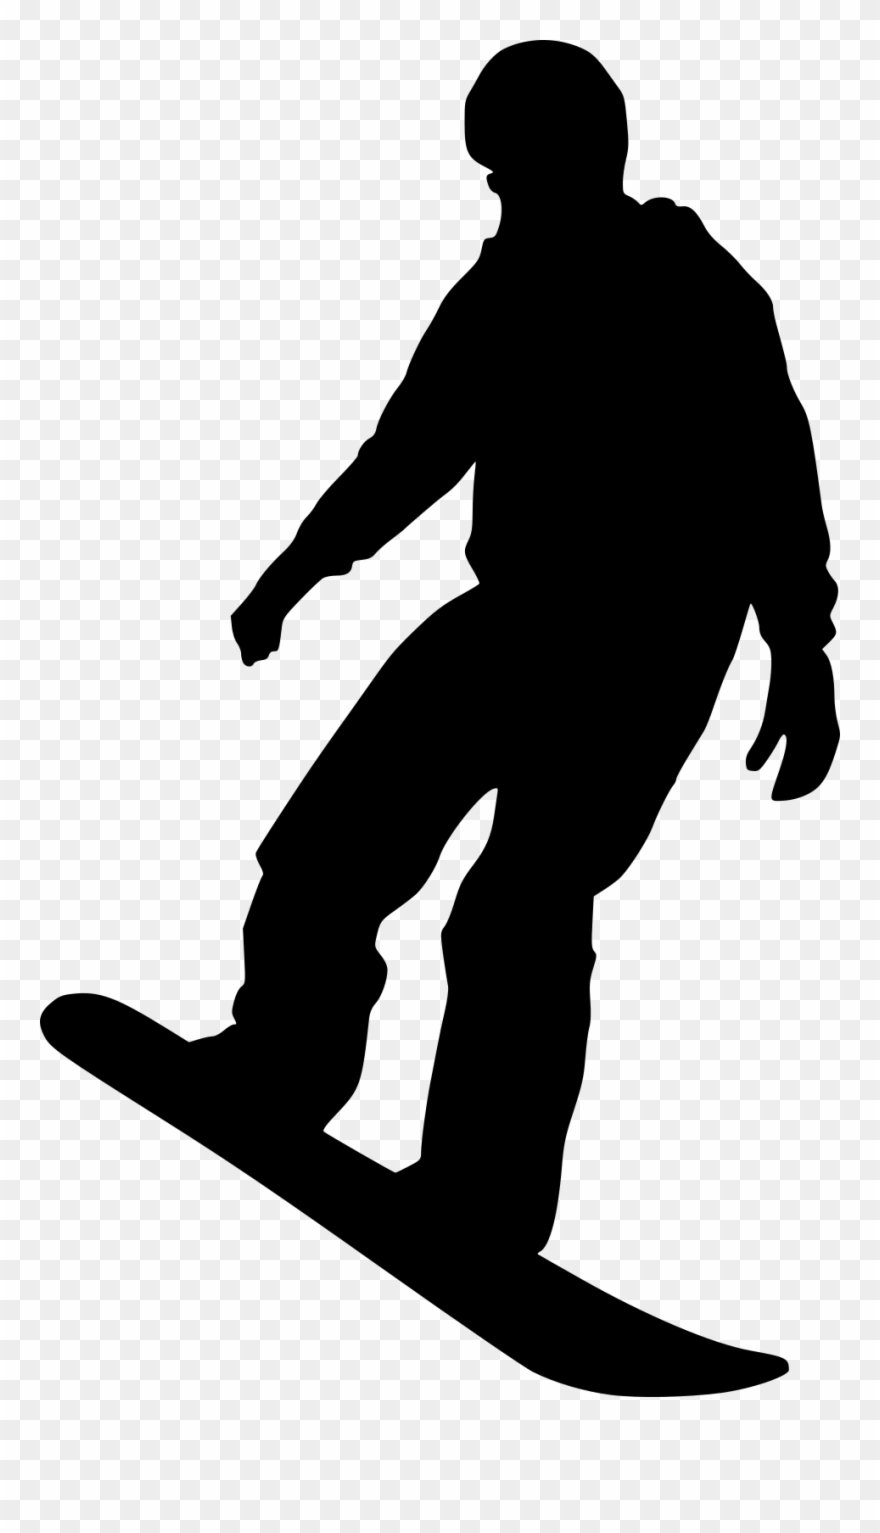 Free Download Silhouette Snowboarder Png Clipart 4440930 Pinclipart